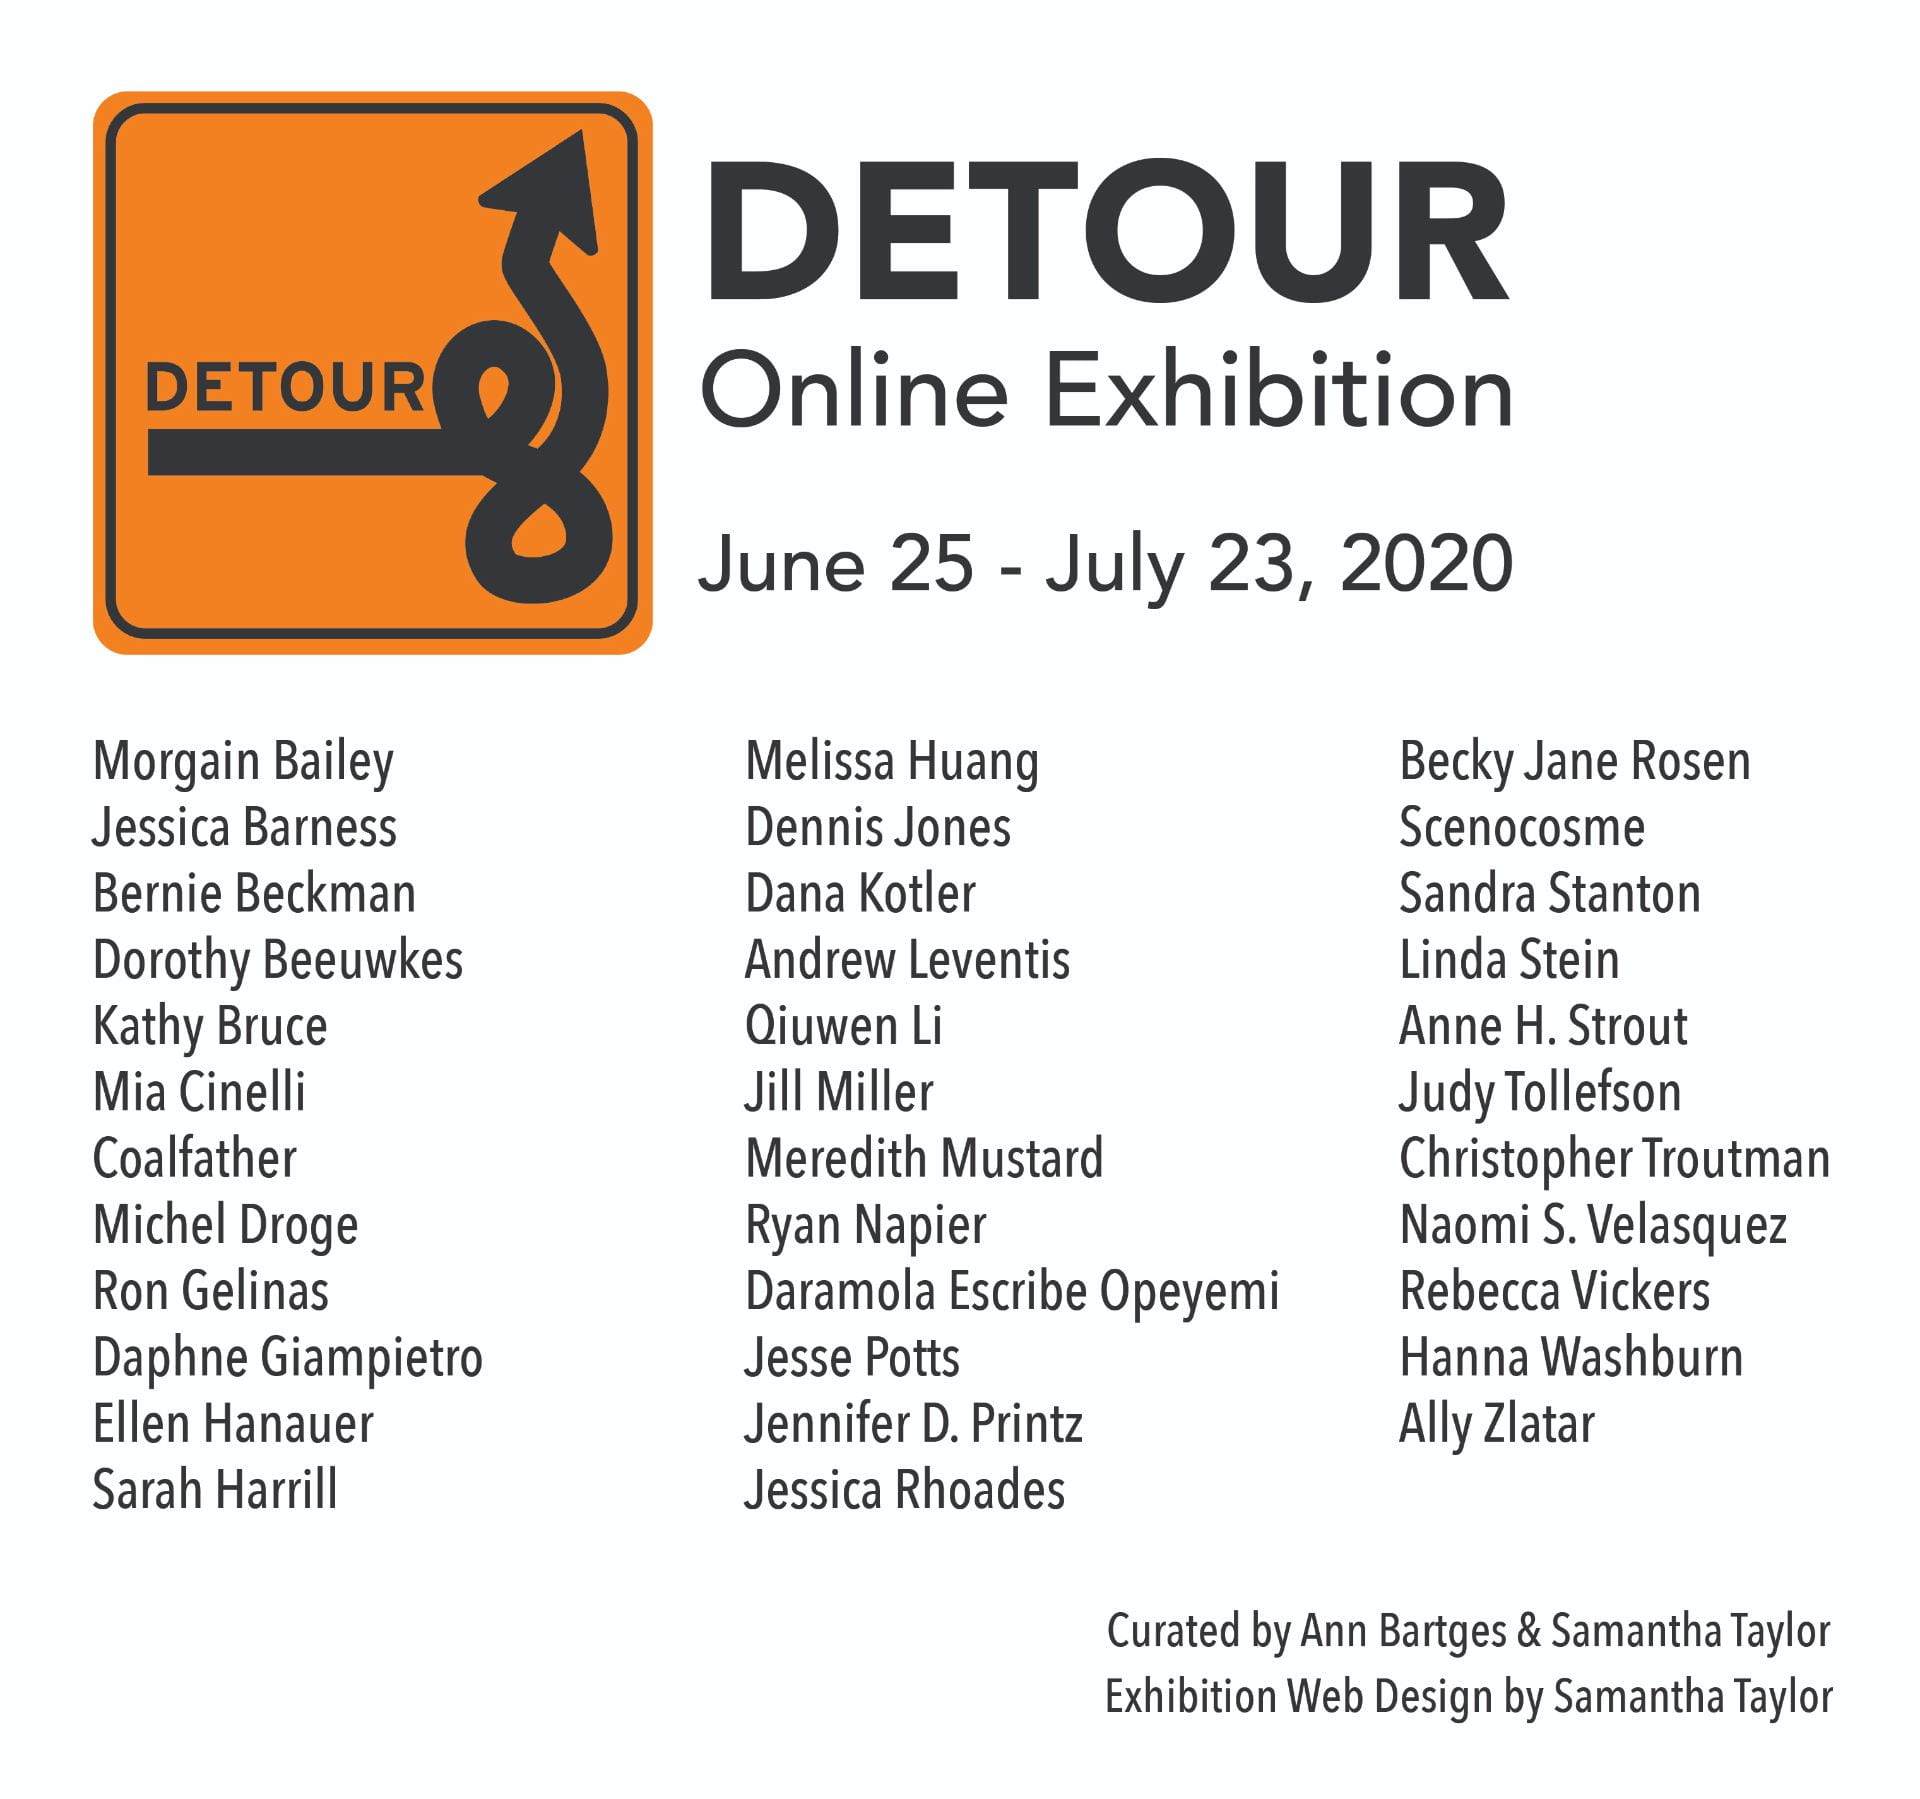 Detour: Online Exhibition features the following artists: Morgain Bailey Jessica Barness Bernie Beckman Dorothy Beeuwkes Kathy Bruce Mia Cinelli Coalfather Michel Droge Ron Gelinas Daphne Giampietro Ellen Hanauer Sarah Harrill Melissa Huang Dennis Jones Dana Kotler Andrew Leventis Qiuwen Li Jill Miller Meredith Mustard Ryan Napier Daramola Escribe Opeyemi Jesse Potts Jennifer D. Printz Jessica Rhoades Becky Jane Rosen Scenocosme Sandra Stanton Linda Stein Anne H. Strout Judy Tollefson Christopher Troutman Naomi S. Velasquez Rebecca Vickers Hanna Washburn Ally Zlatar. Curated by: Ann Bartges and Samantha Taylor and is designed by Samantha Taylor.